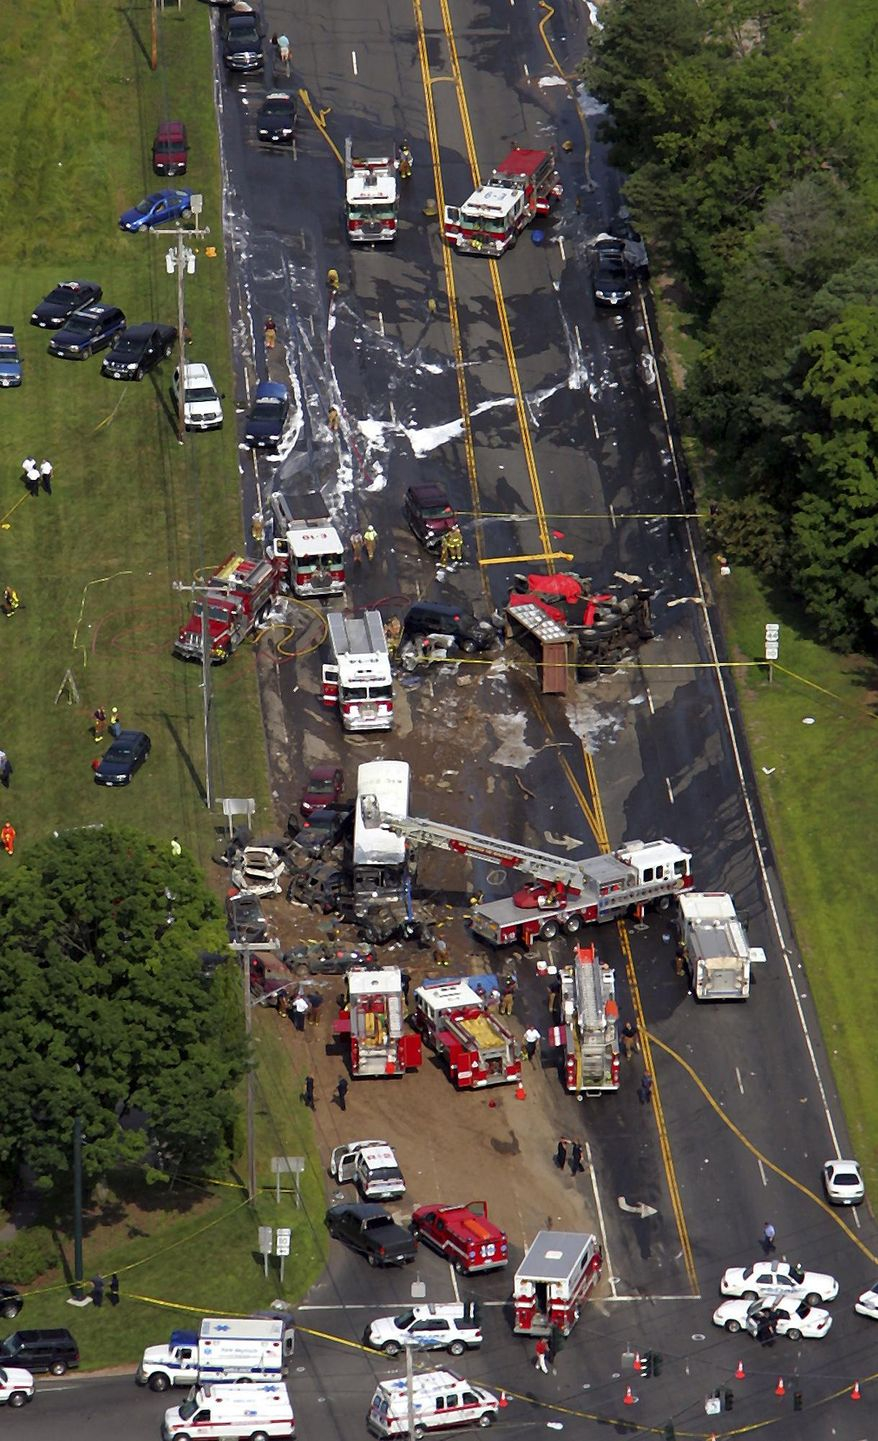 FILE - In this July 29, 2005 file photo, emergency personnel and vehicles work an accident in Avon, Conn. Lawyers for victims of the wreck, which killed four people and injured 19, argued before the state Supreme Court Wednesday, April 30, 2014, to have claims against the state Department of Transportation adjudicated before a jury. The victims have said there weren't adequate safety precautions, like a runaway truck ramp for the steep road. The department denies the road was defective and claims government immunity. (AP Photo/Bob Child, File)